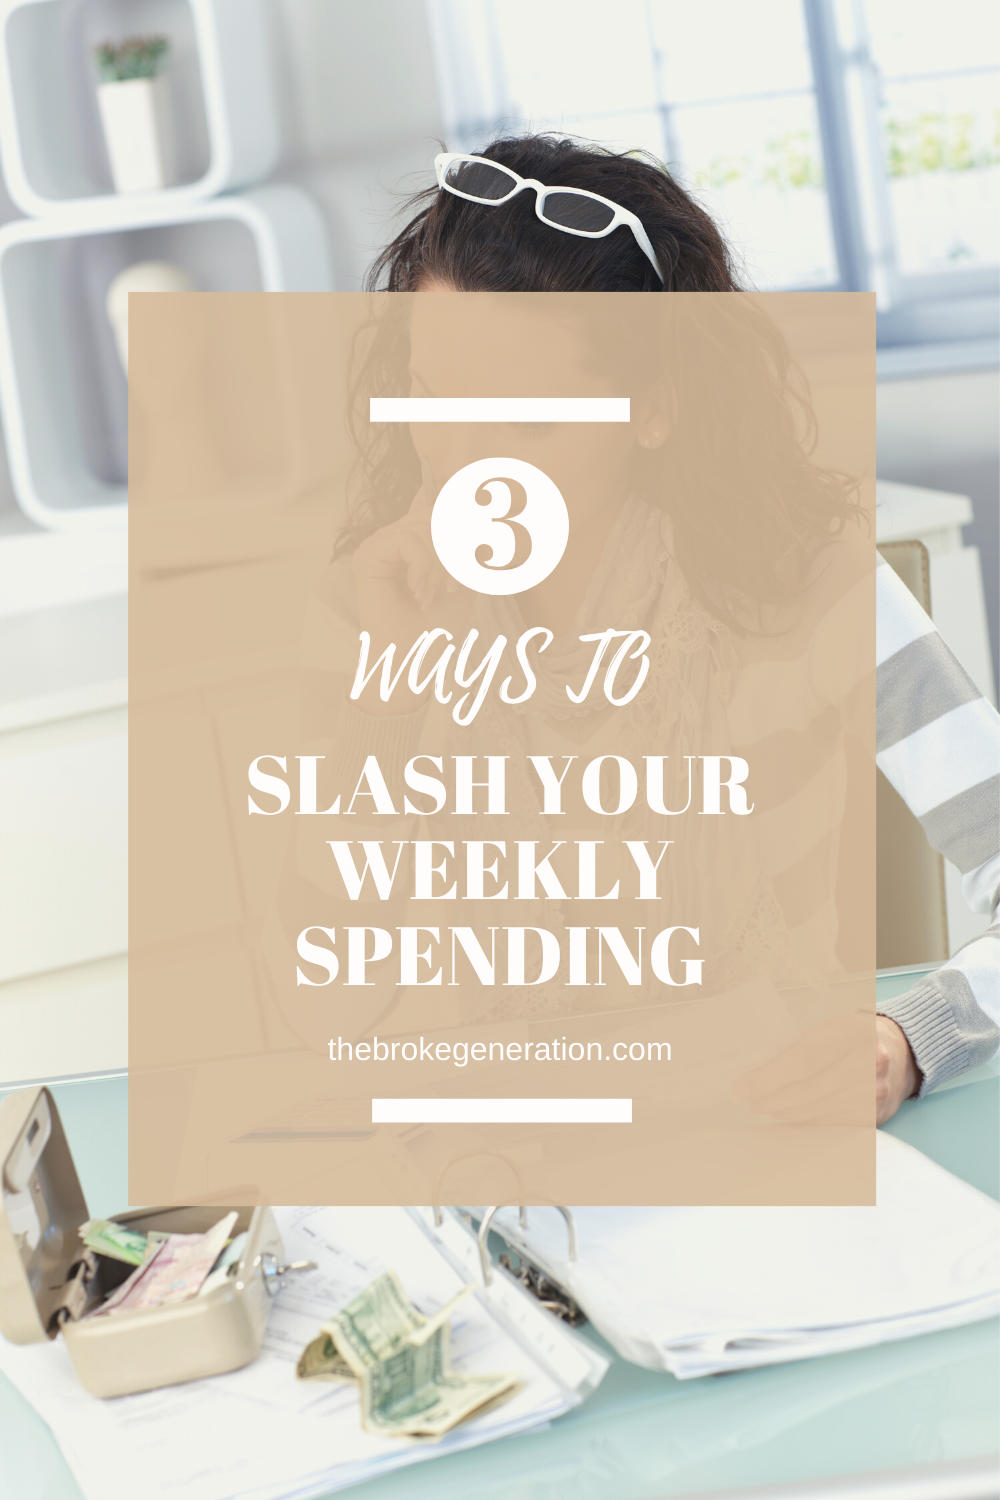 3 ways to slash your weekly spending